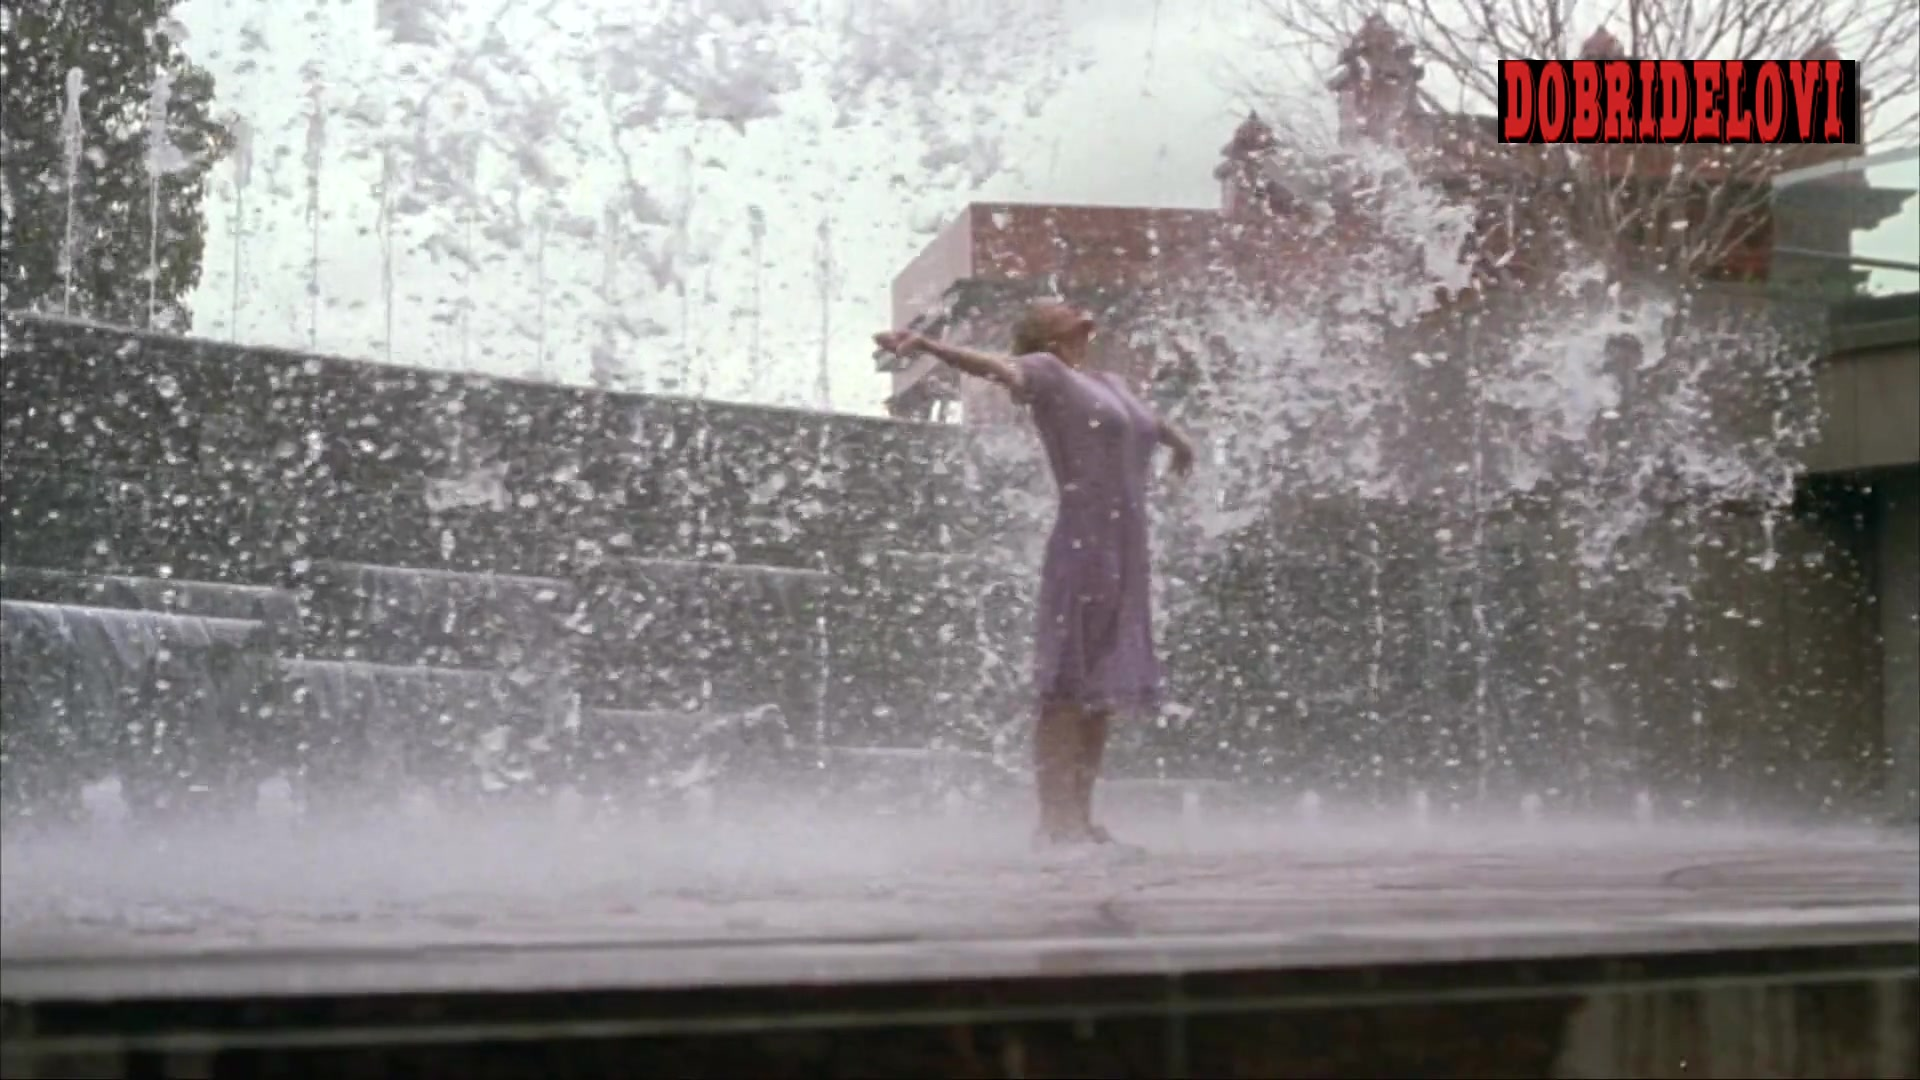 Elisabeth Shue playing in the fountain scene from Molly